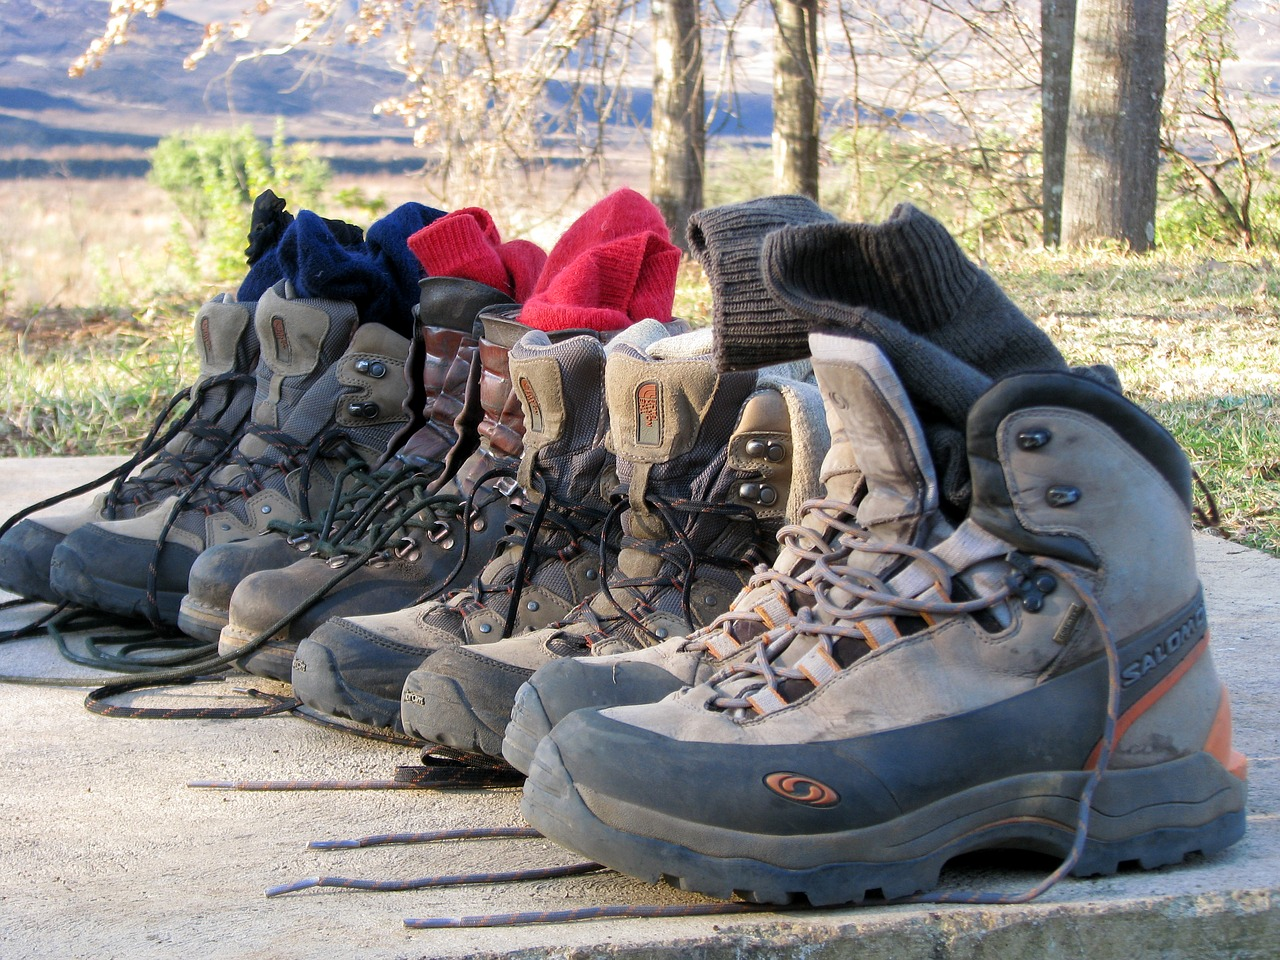 Hiking boots - soldier 30:30 challenge